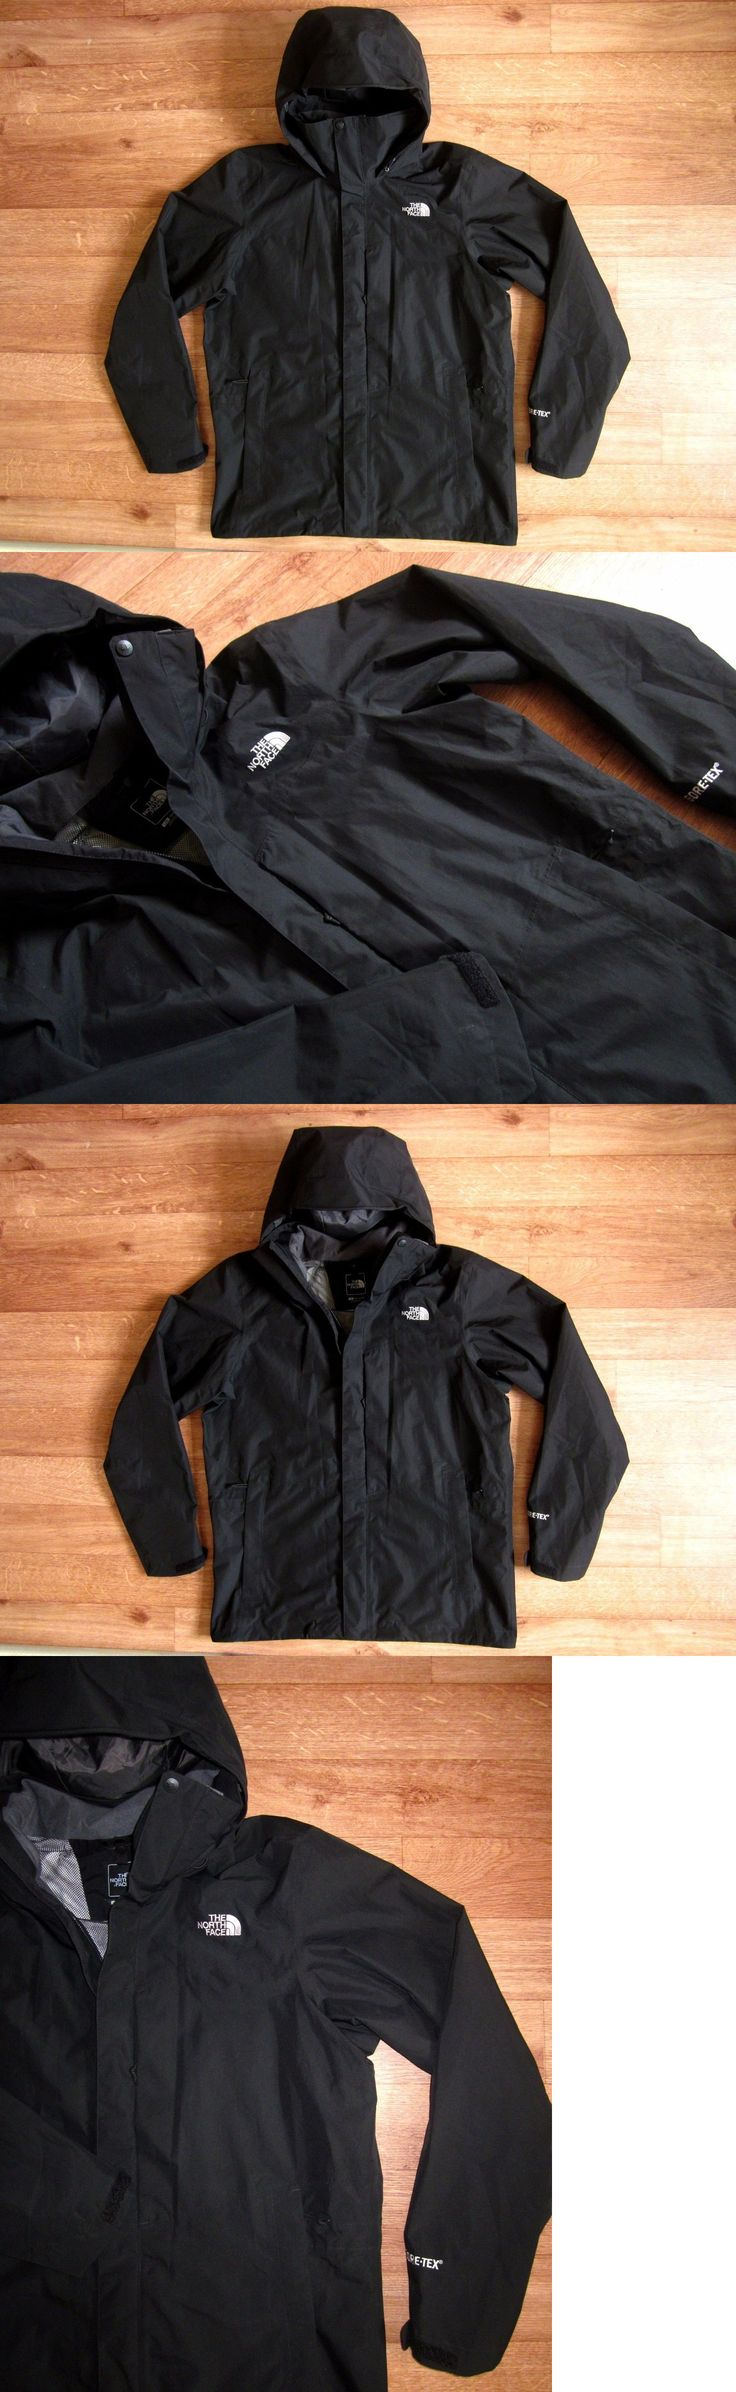 Clothing 101685: The North Face All Terrain Gore-Tex Men S Jacket L Rrp£190 -> BUY IT NOW ONLY: $99 on eBay!